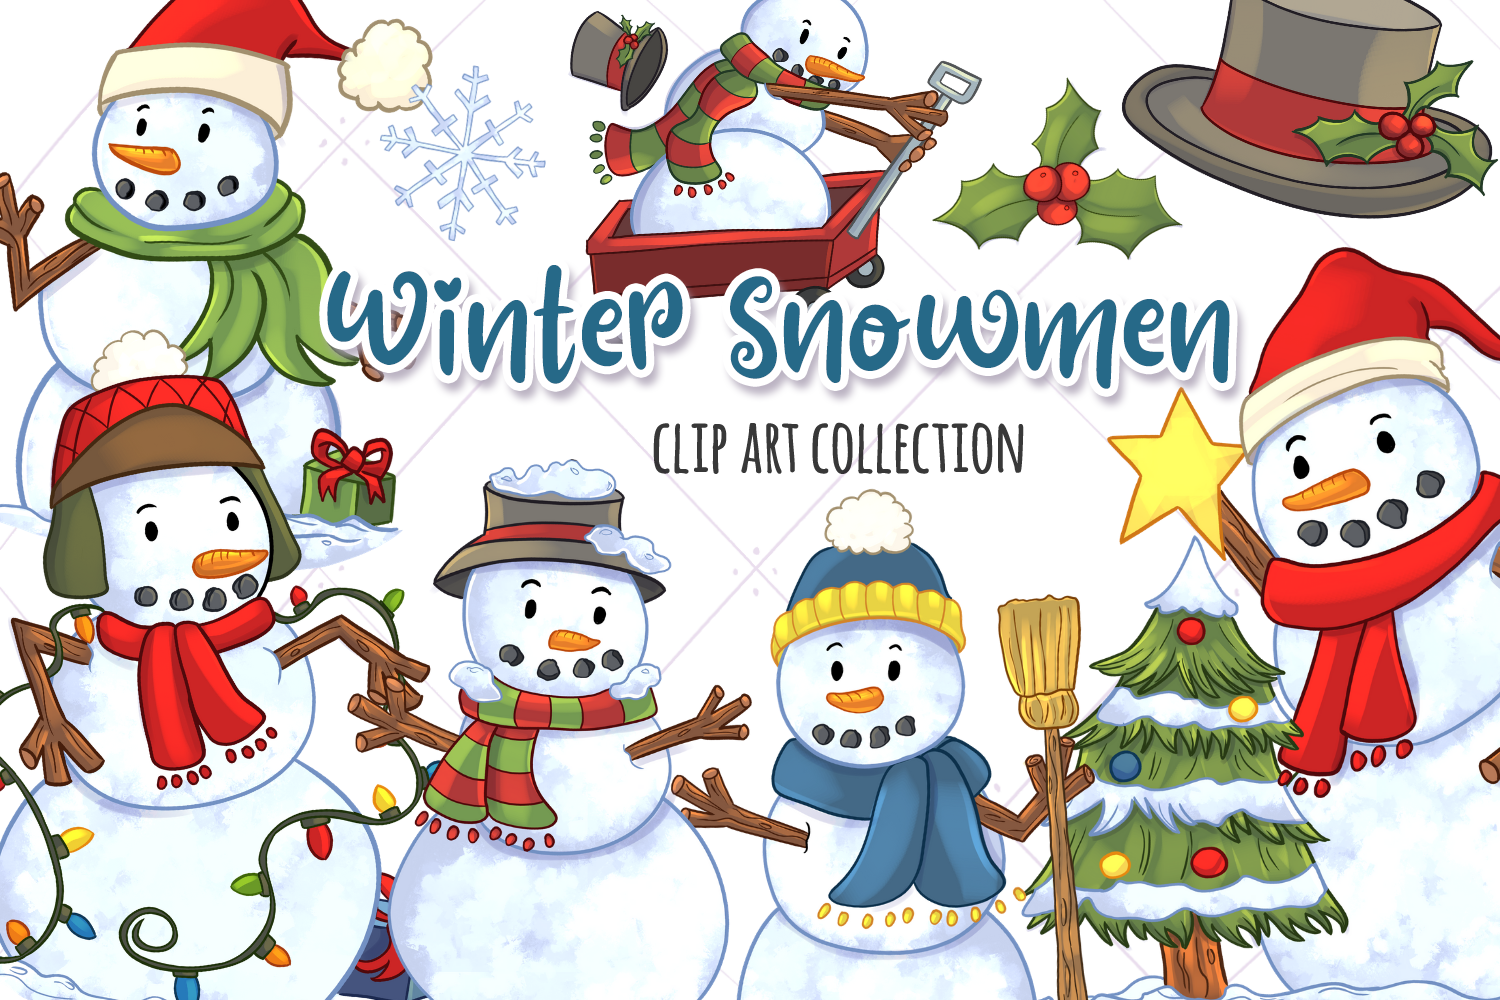 Download Free Christmas Snowmen Clip Art Collection Graphic By for Cricut Explore, Silhouette and other cutting machines.